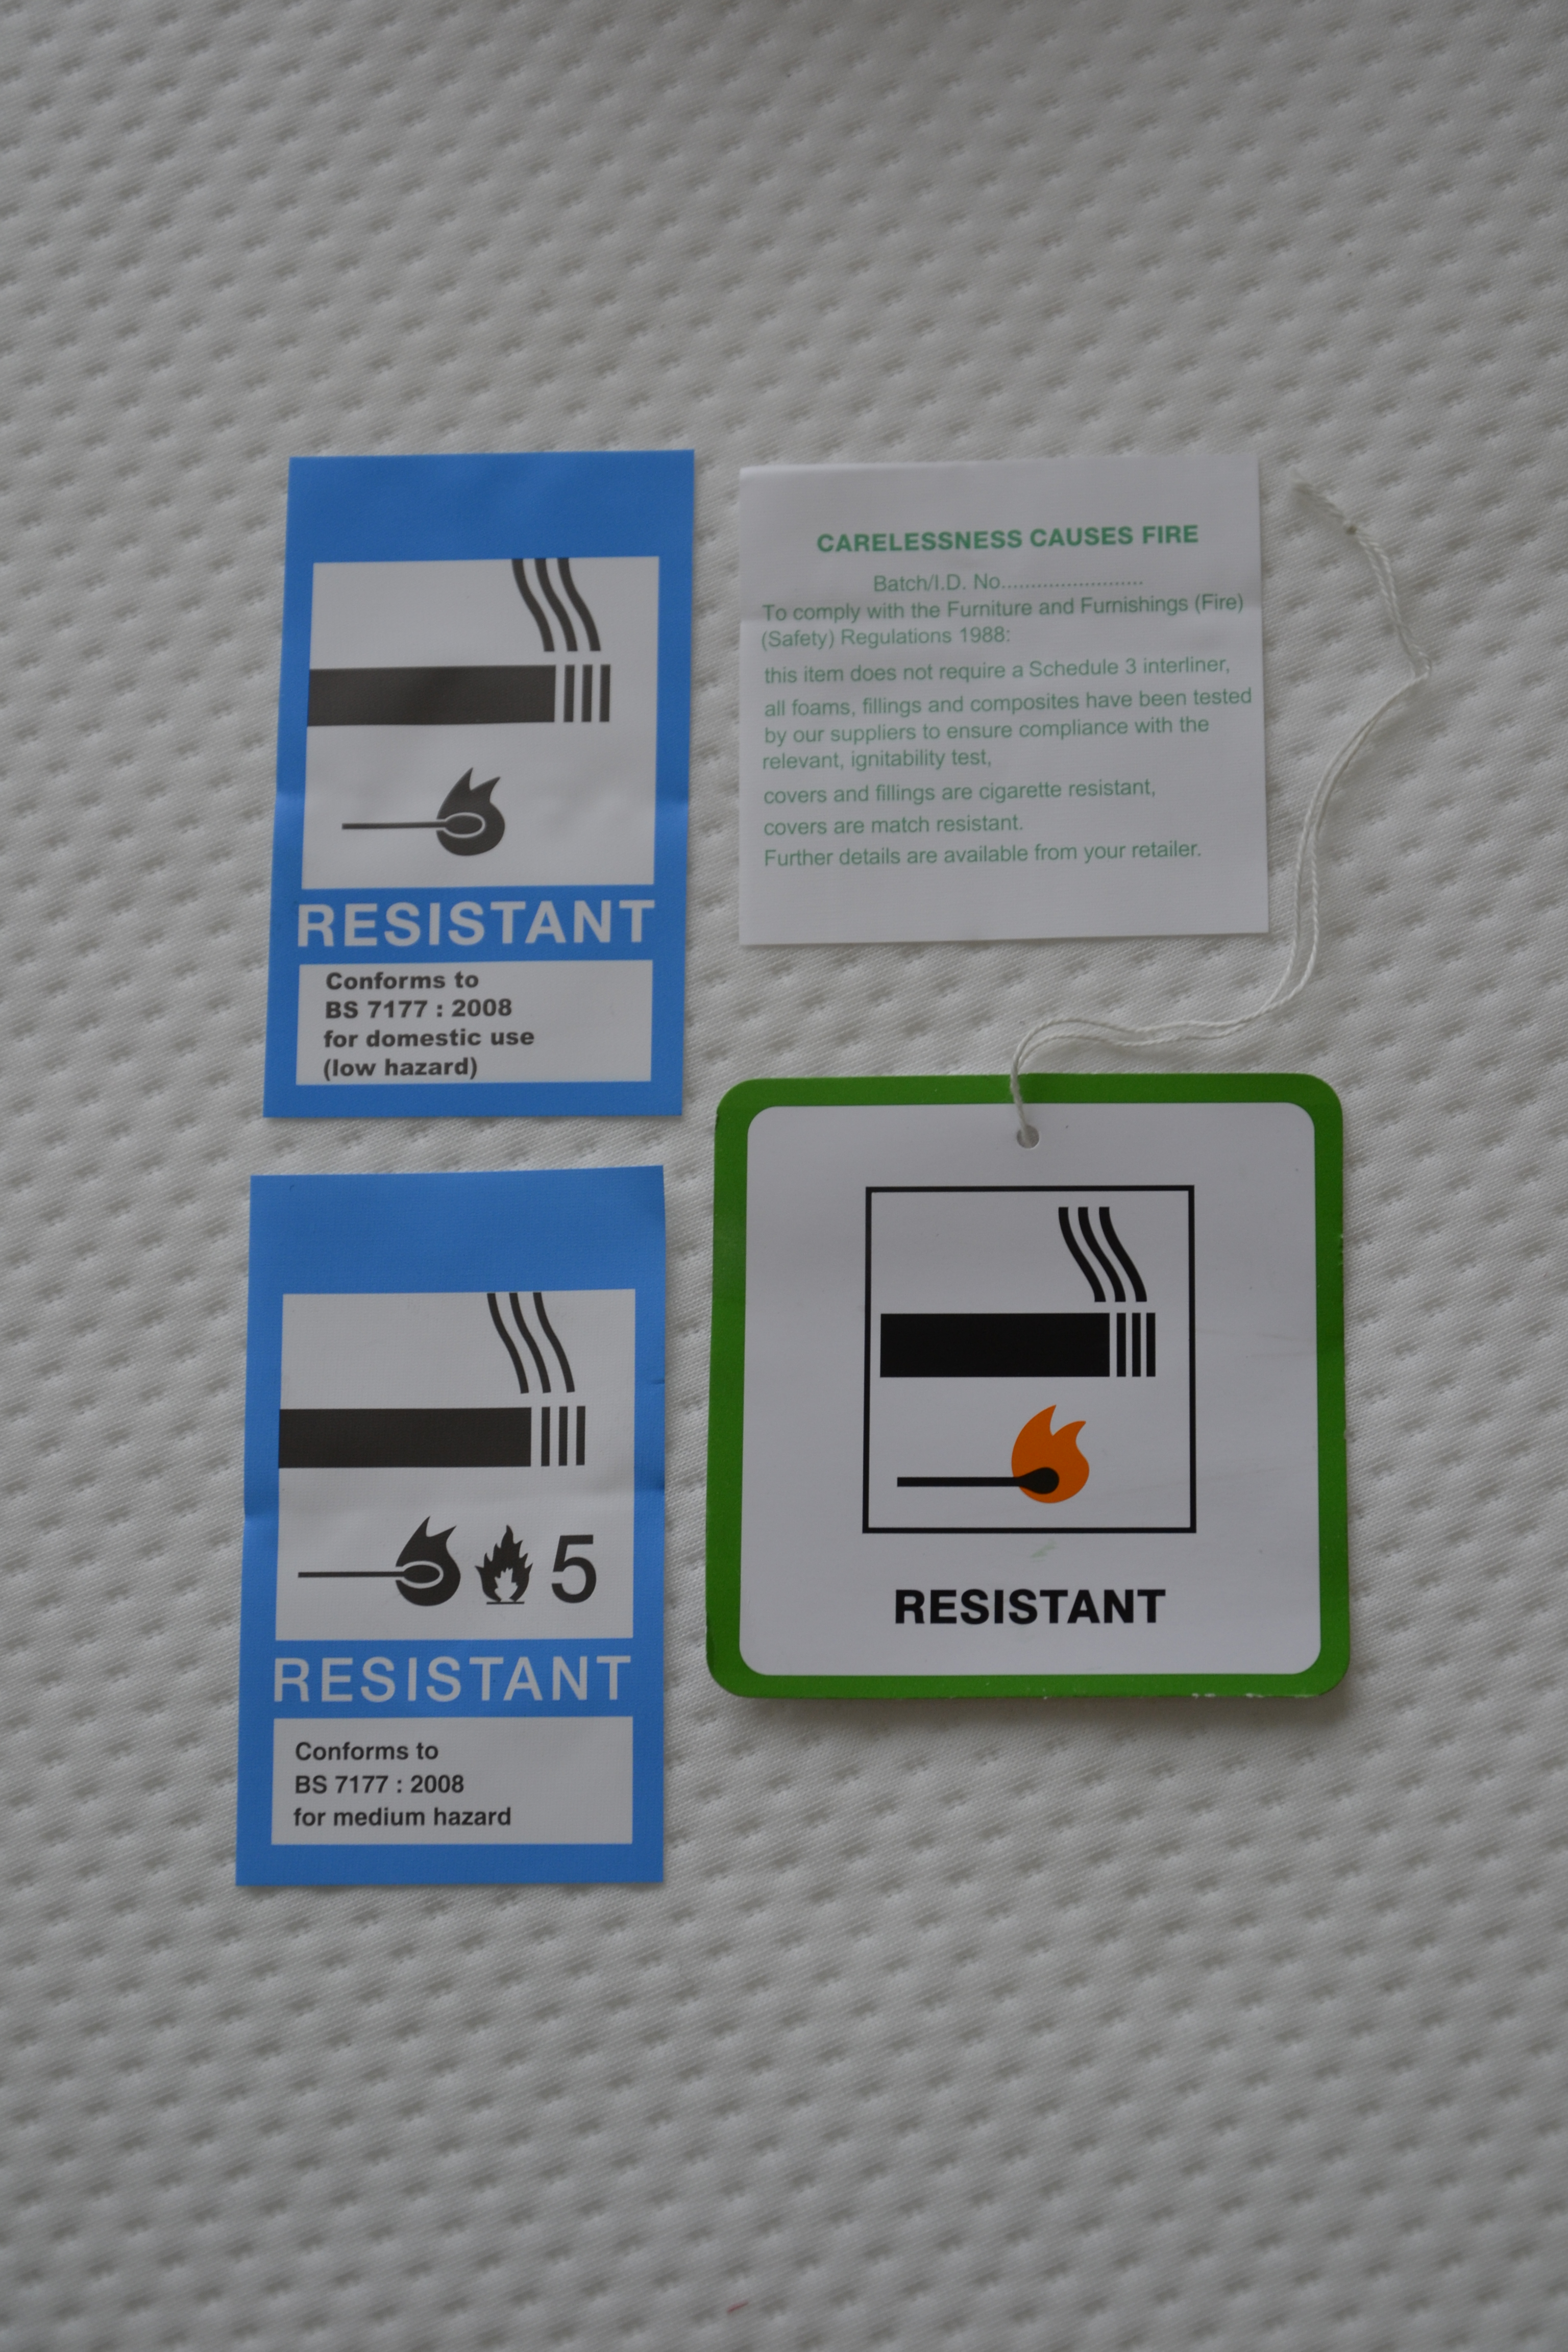 Bedding Components